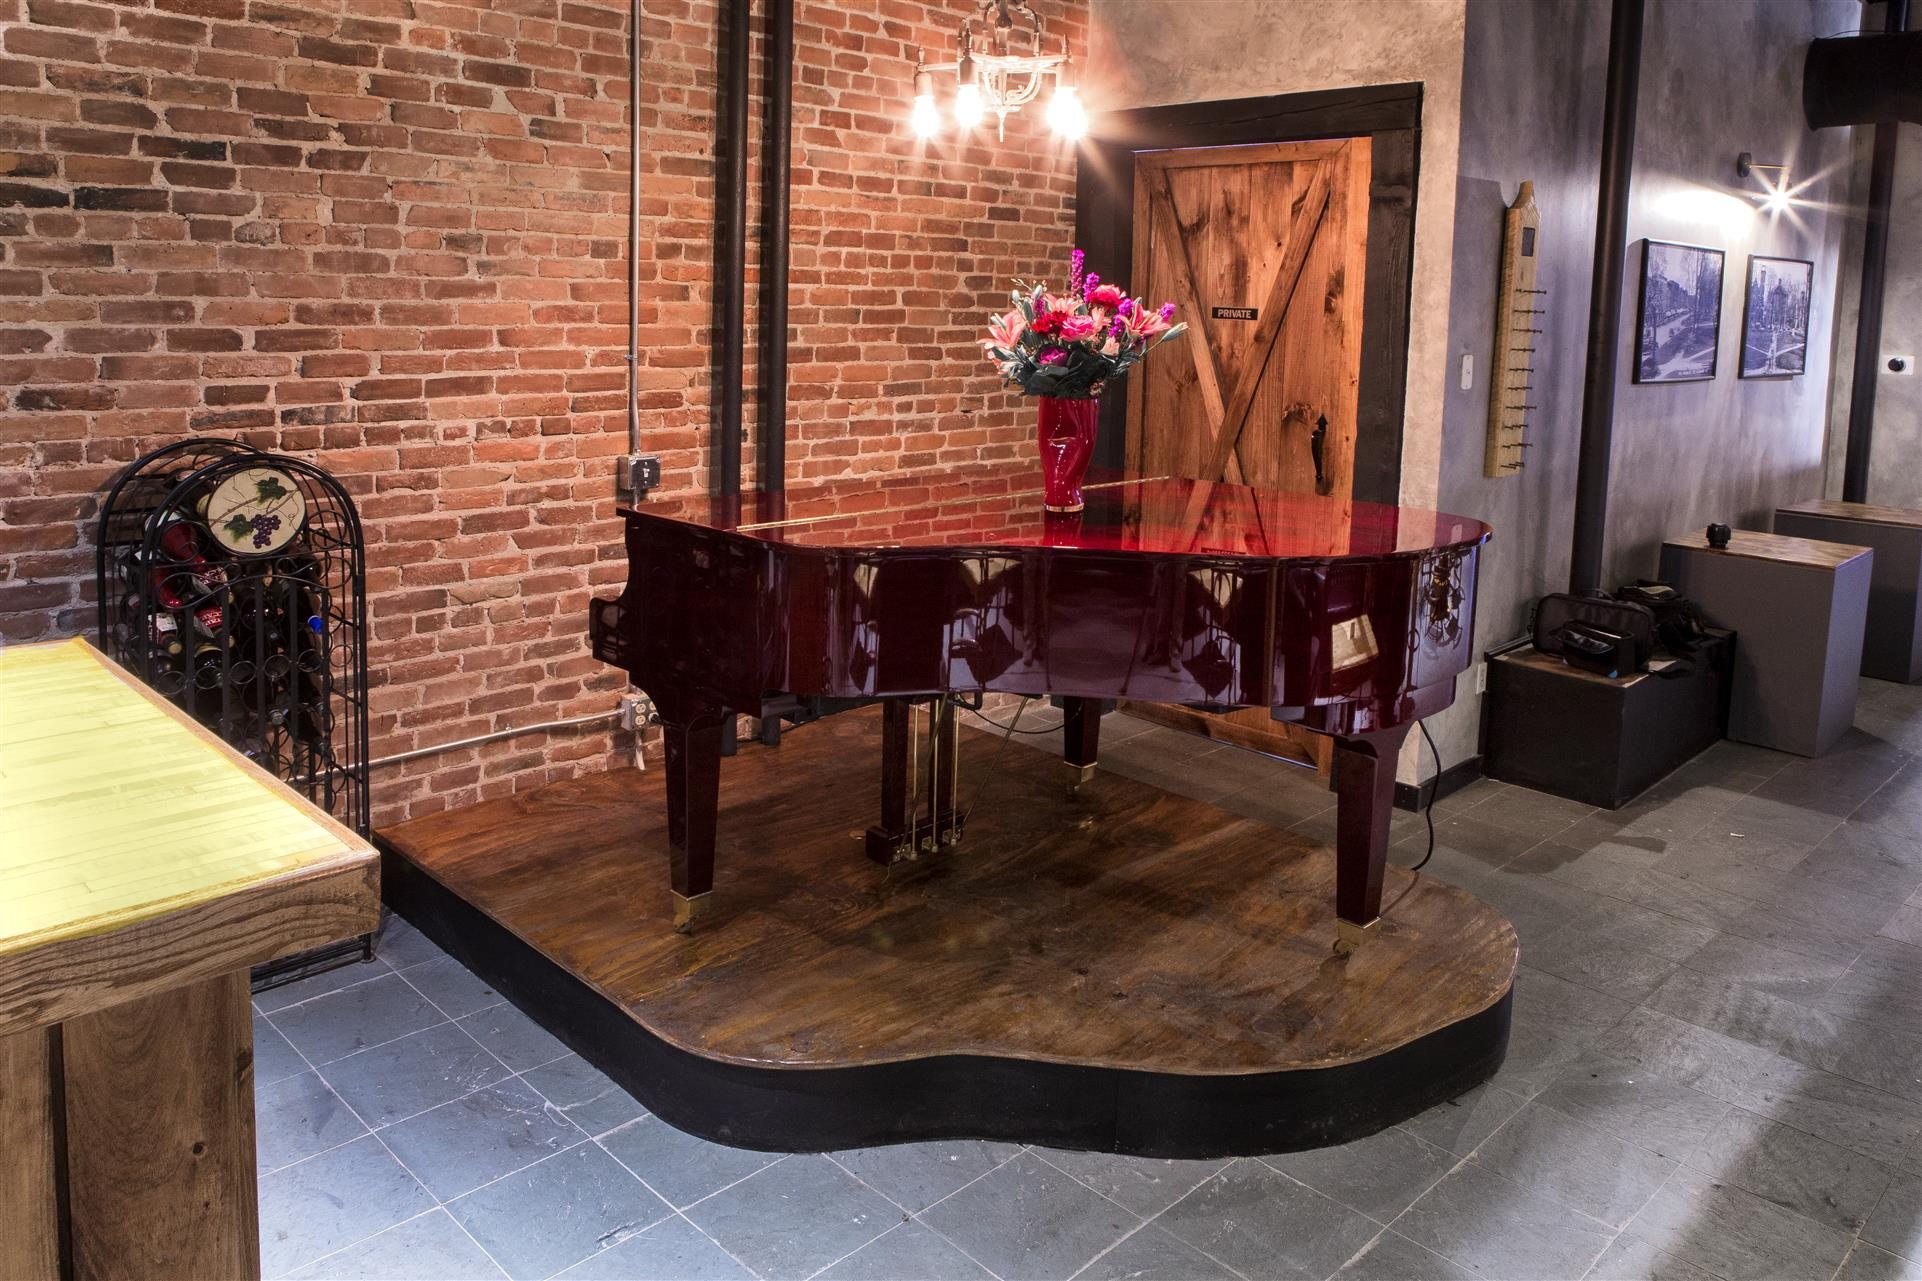 a piano with a decorative vase of flowers